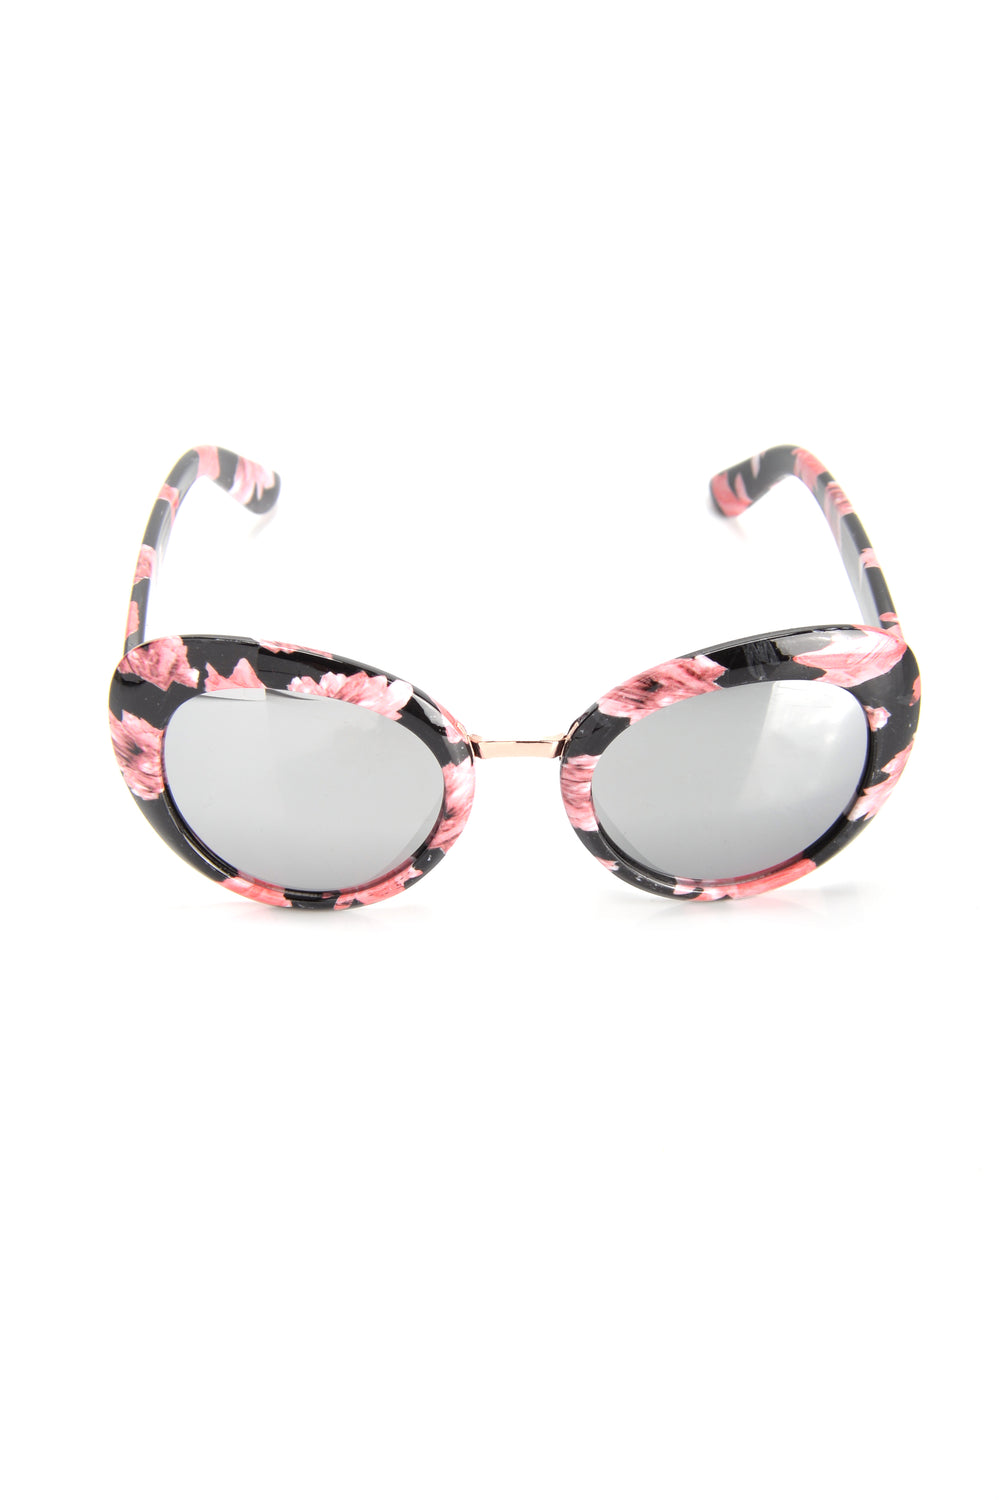 As If Sunglasses - Black Floral